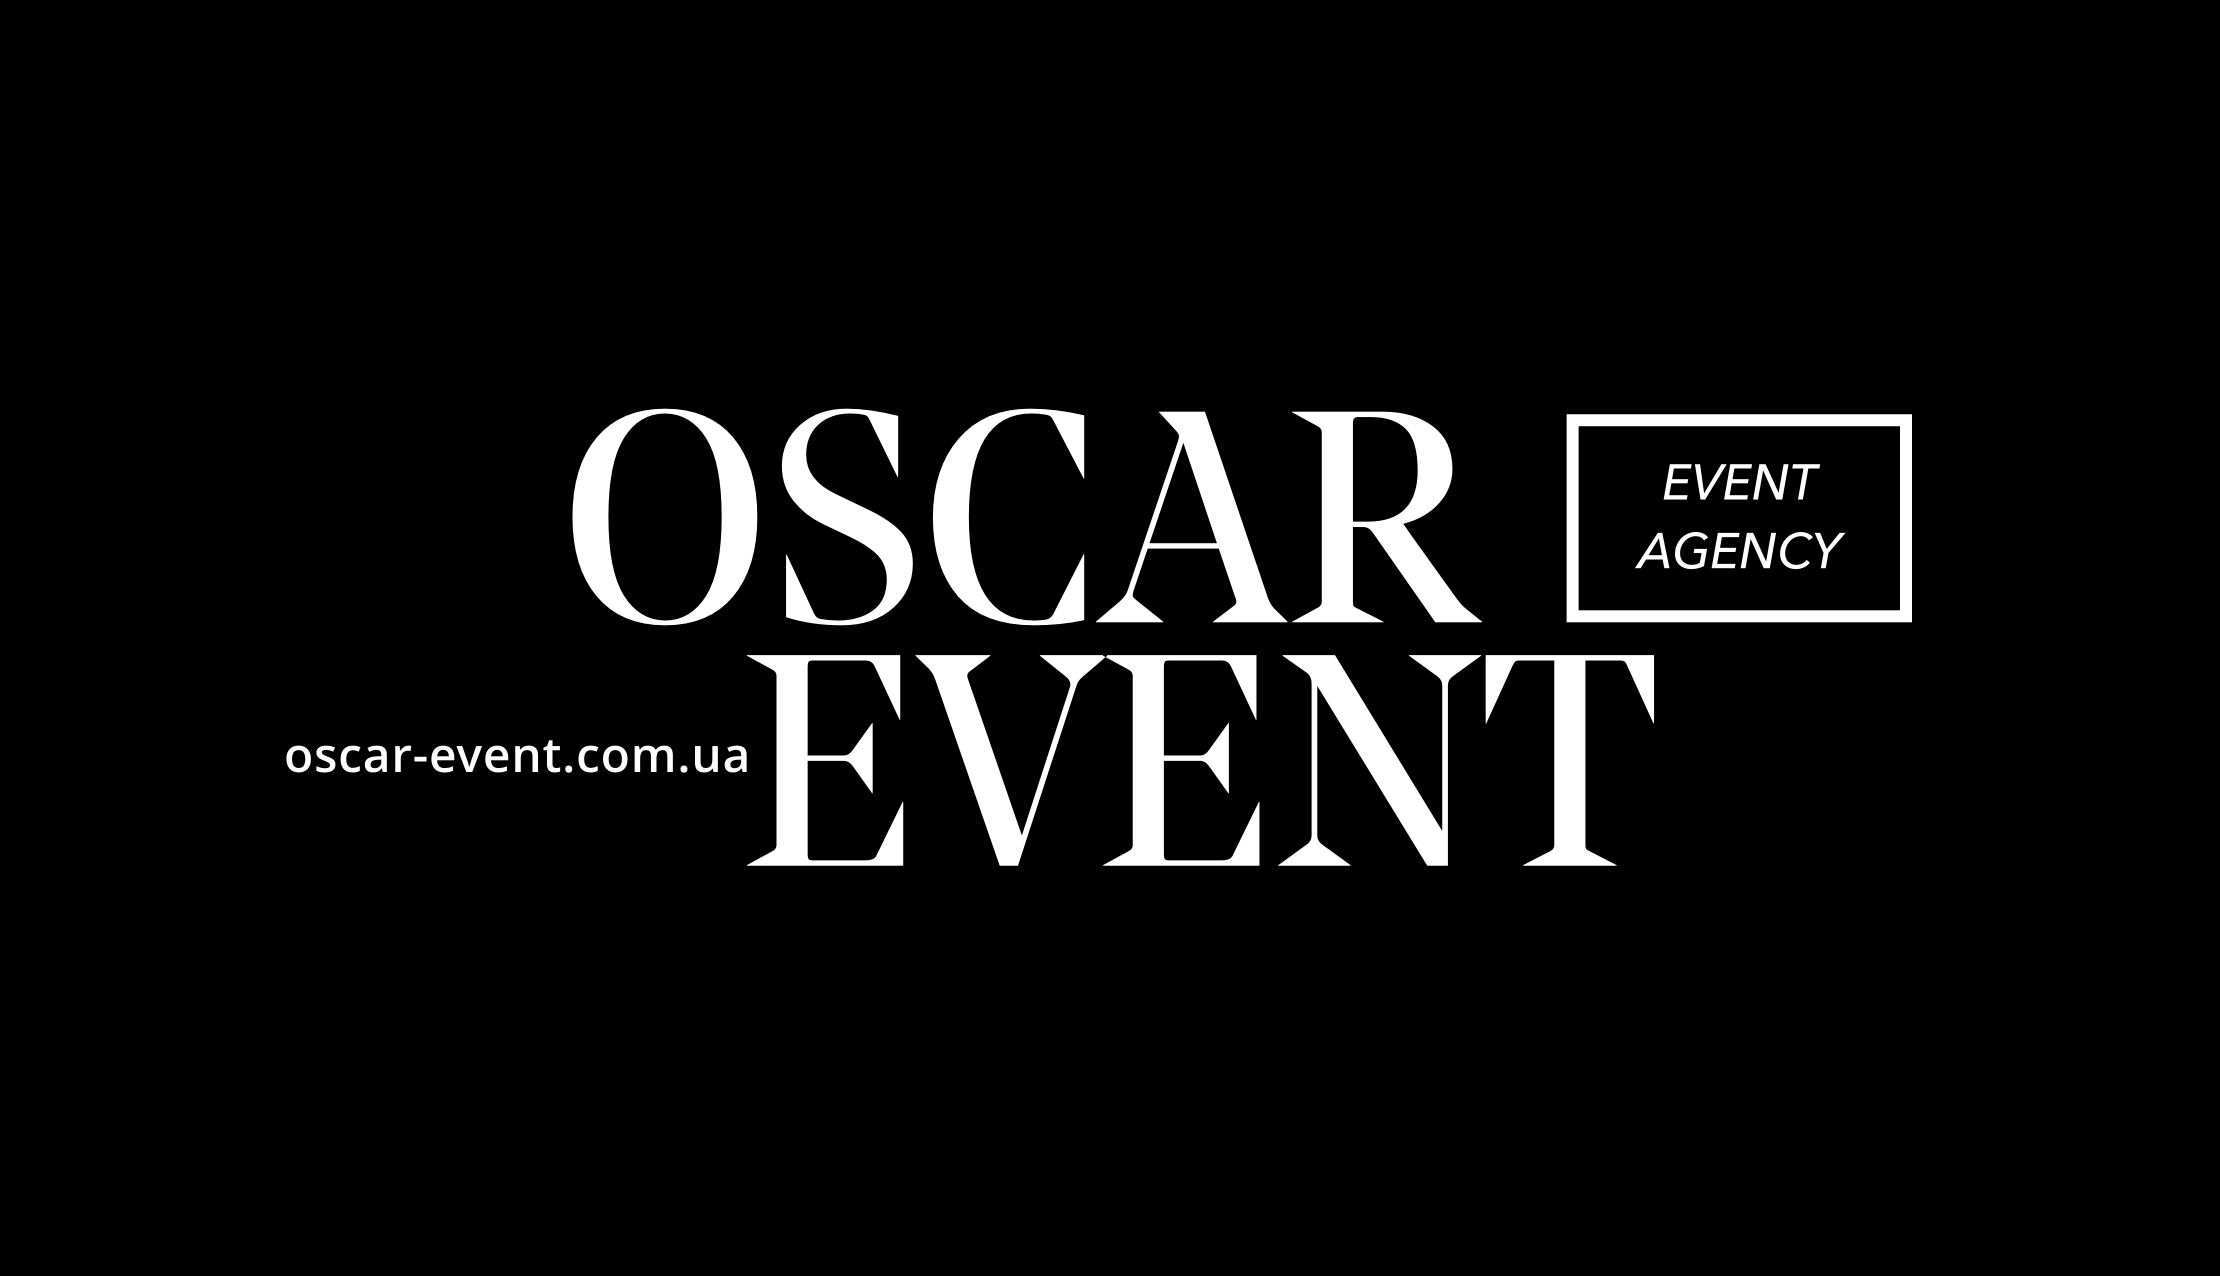 event front